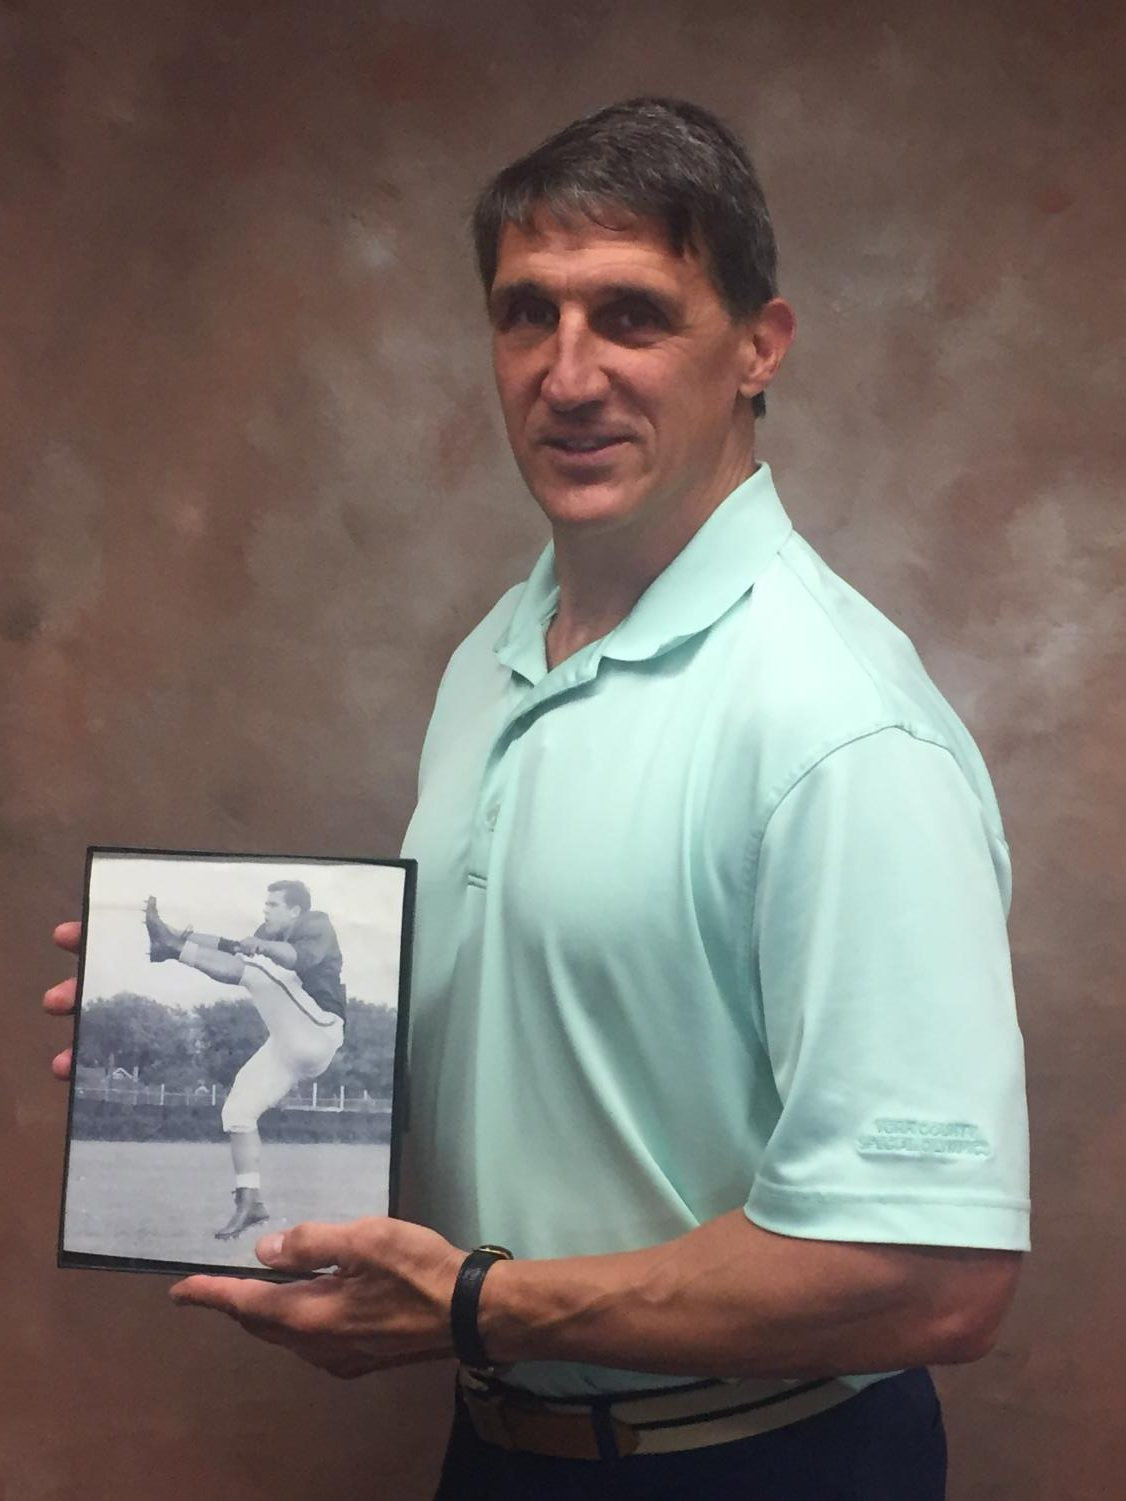 Mr. Michaels poses holding up a picture of his father, Lou Michaels.